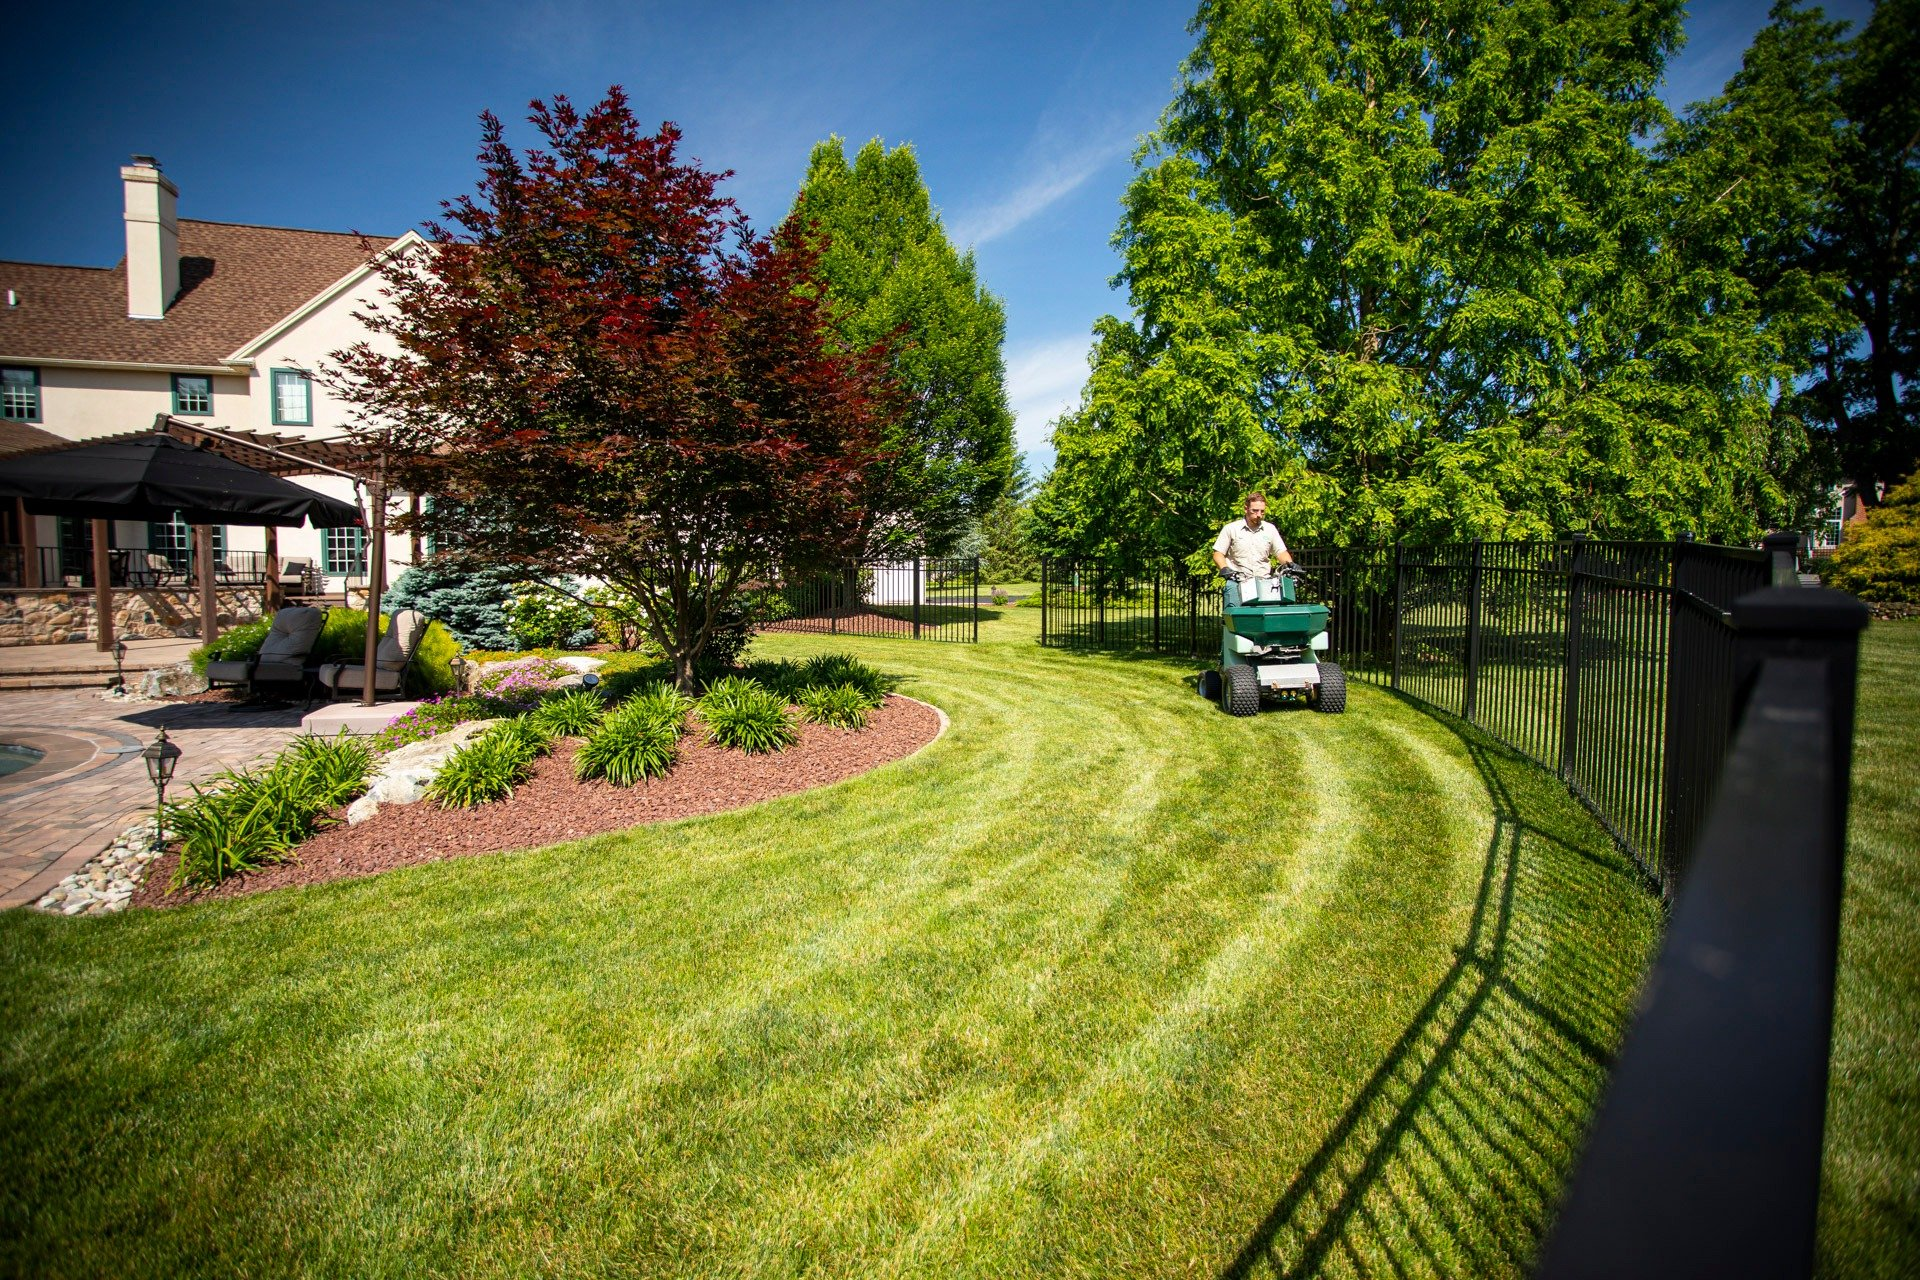 Lawn care technician caring for lawn in Easton, PA